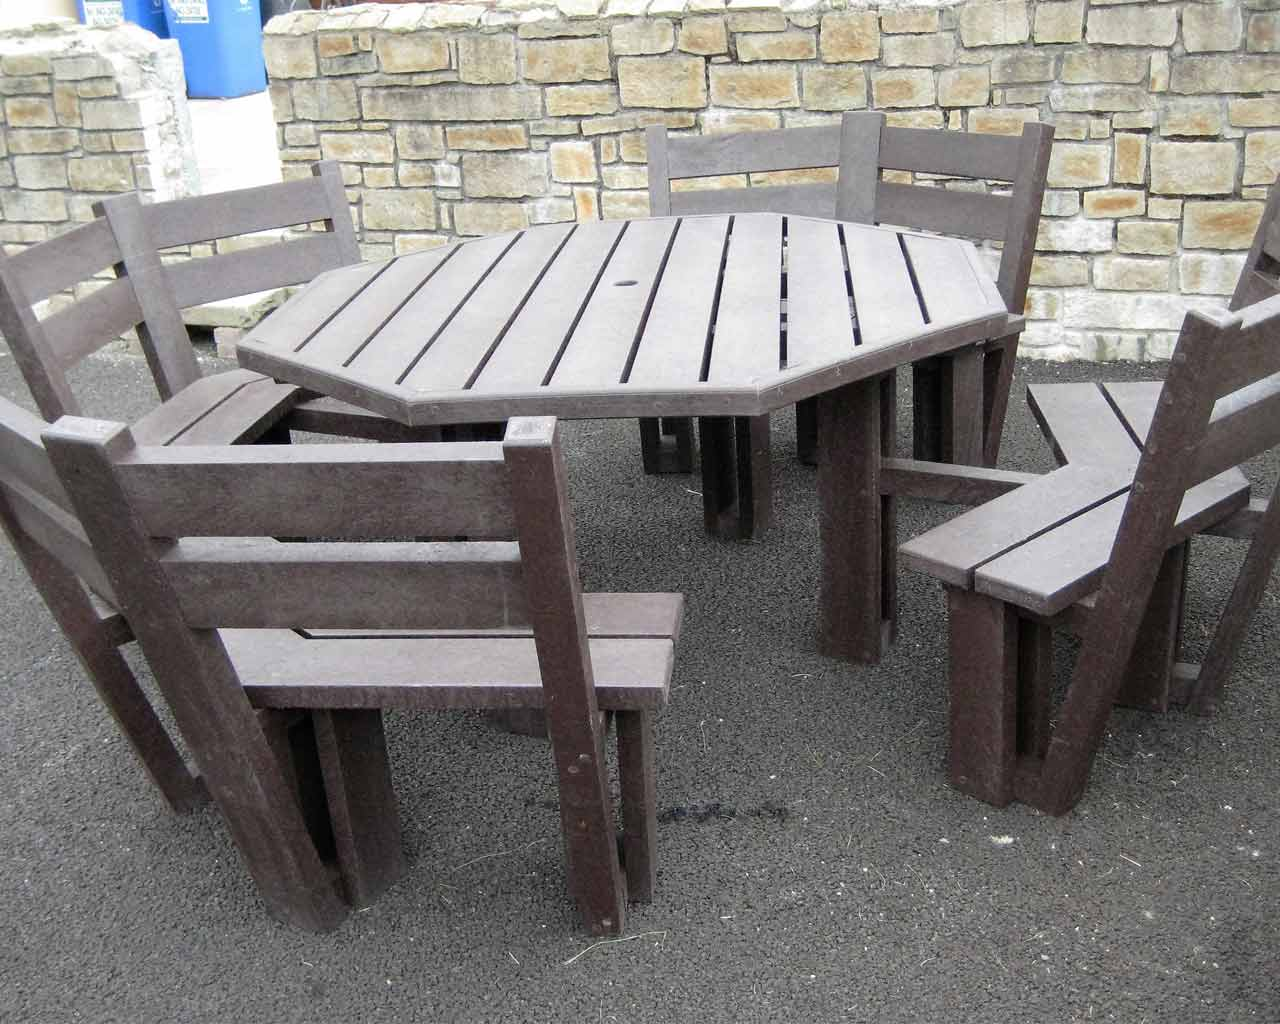 8 Sided Picnic Table With Back Murray S Recycled Plastic